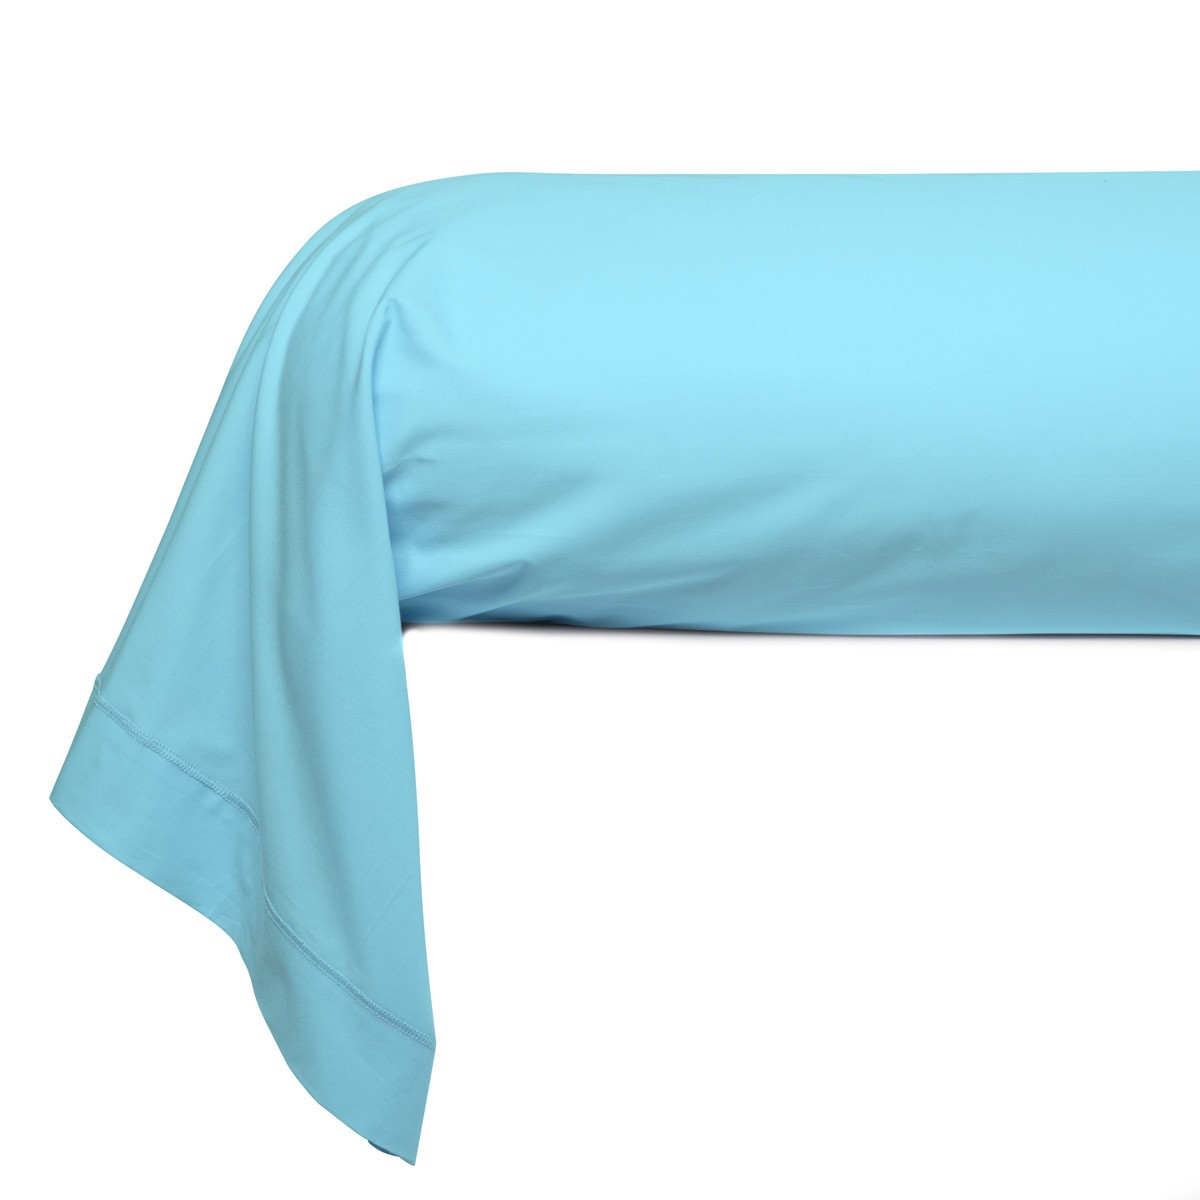 Bolster Solid Color Percale turquoise   Bed linen   Tradition des Vosges